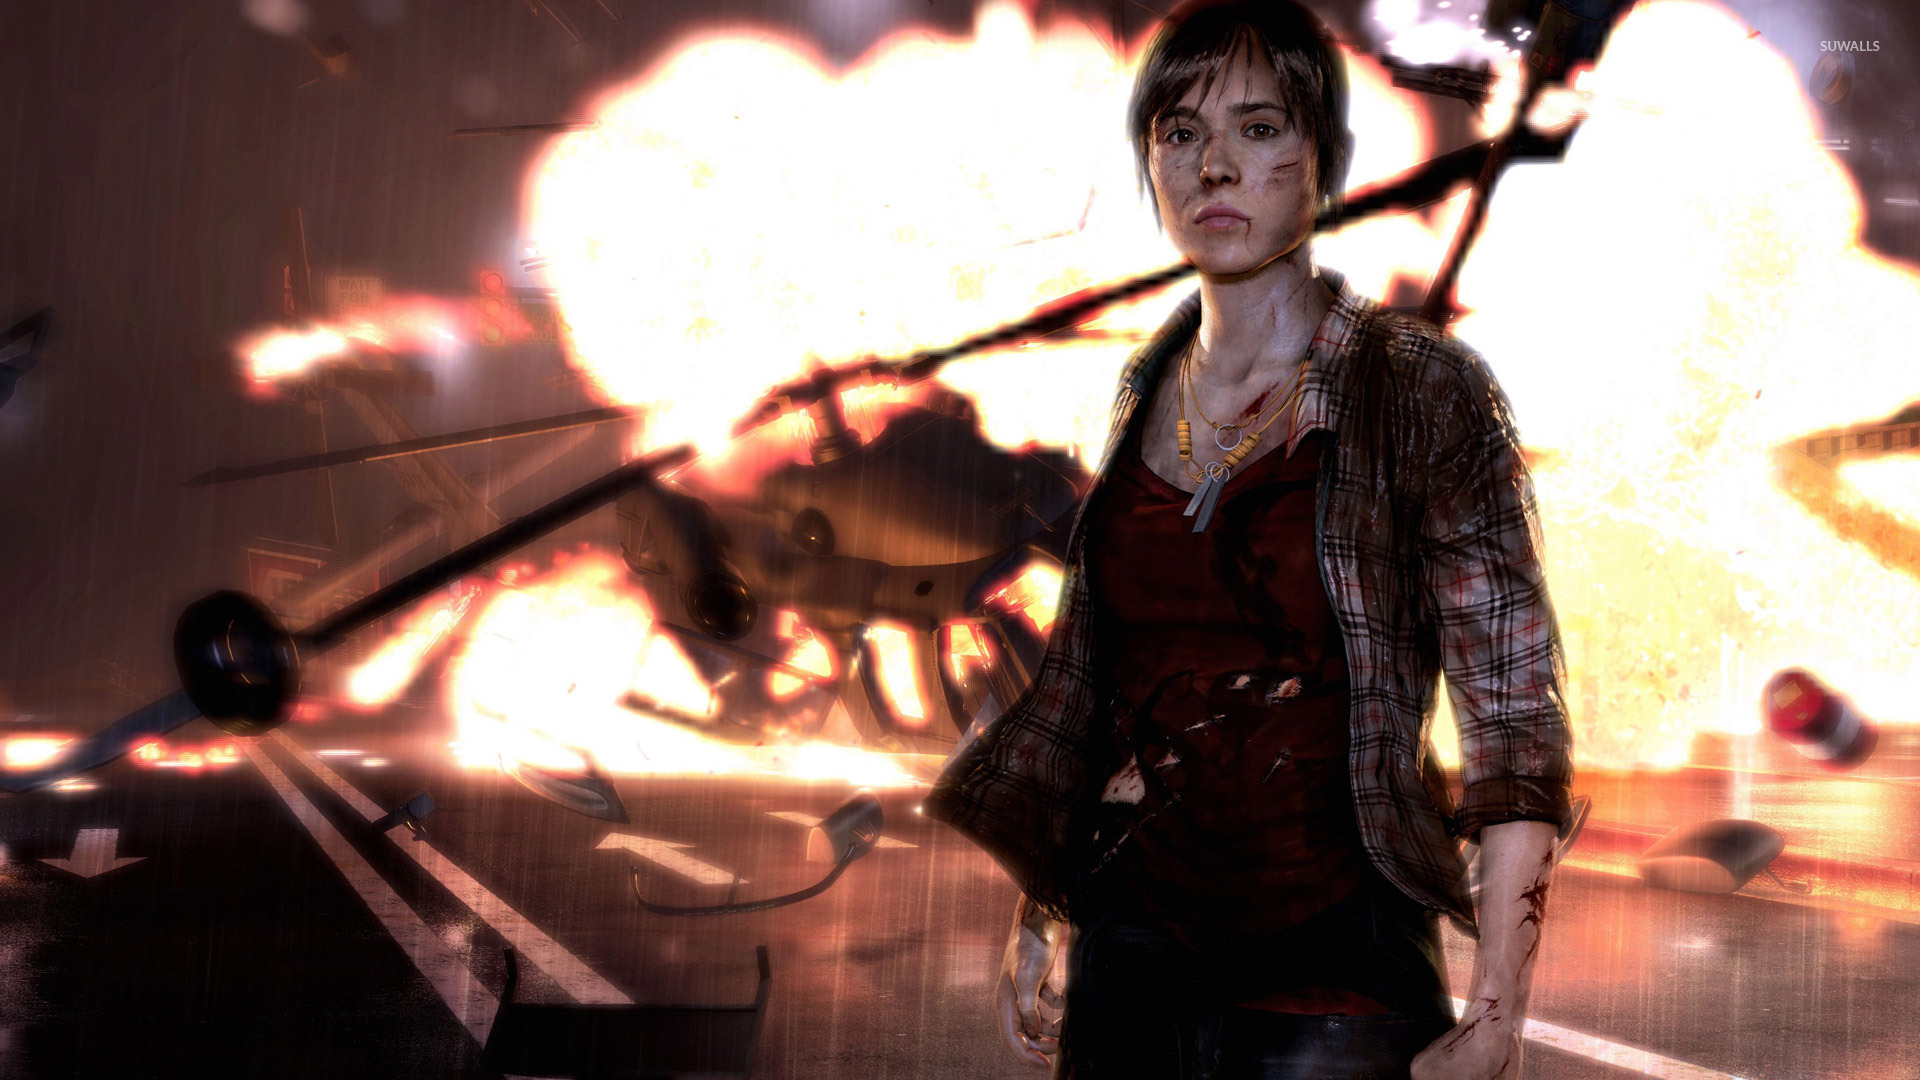 Rain Wallpapers With Quotes Hd Jodie Holmes Beyond Two Souls 6 Wallpaper Game